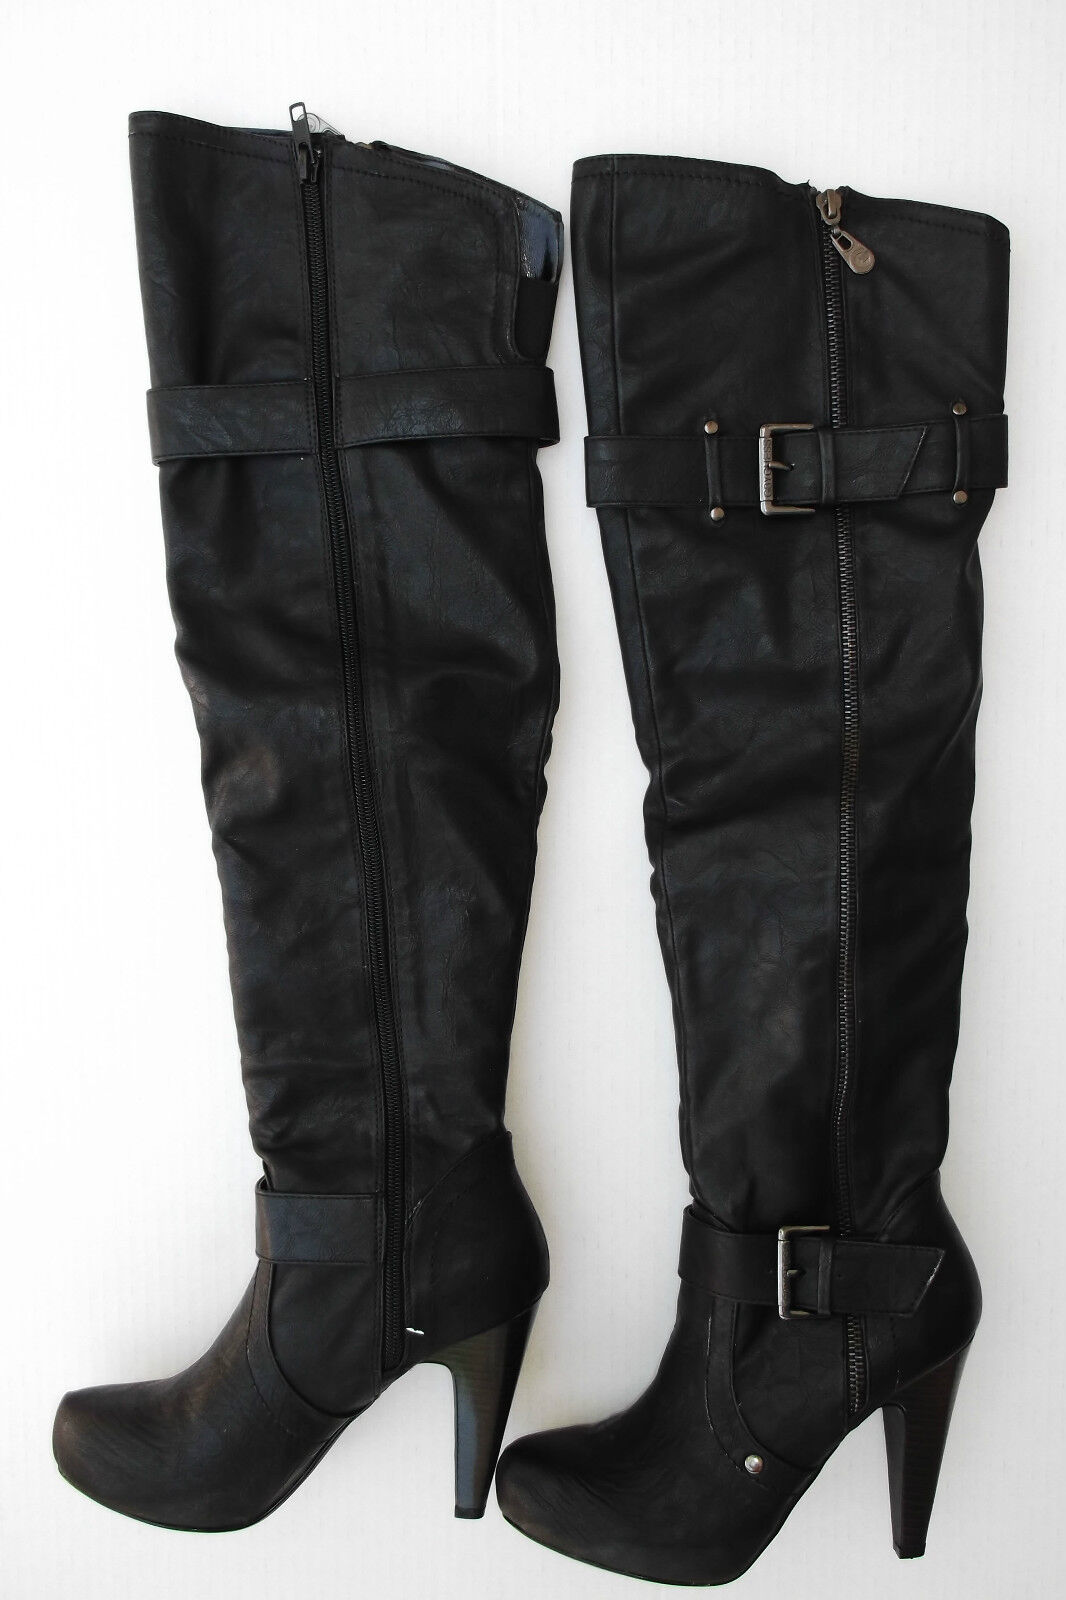 GUESS GGTARMATIC BLACK PLATFORM OVER THE KNEE BOOTS SIZE 5.0M NEW IN BOX